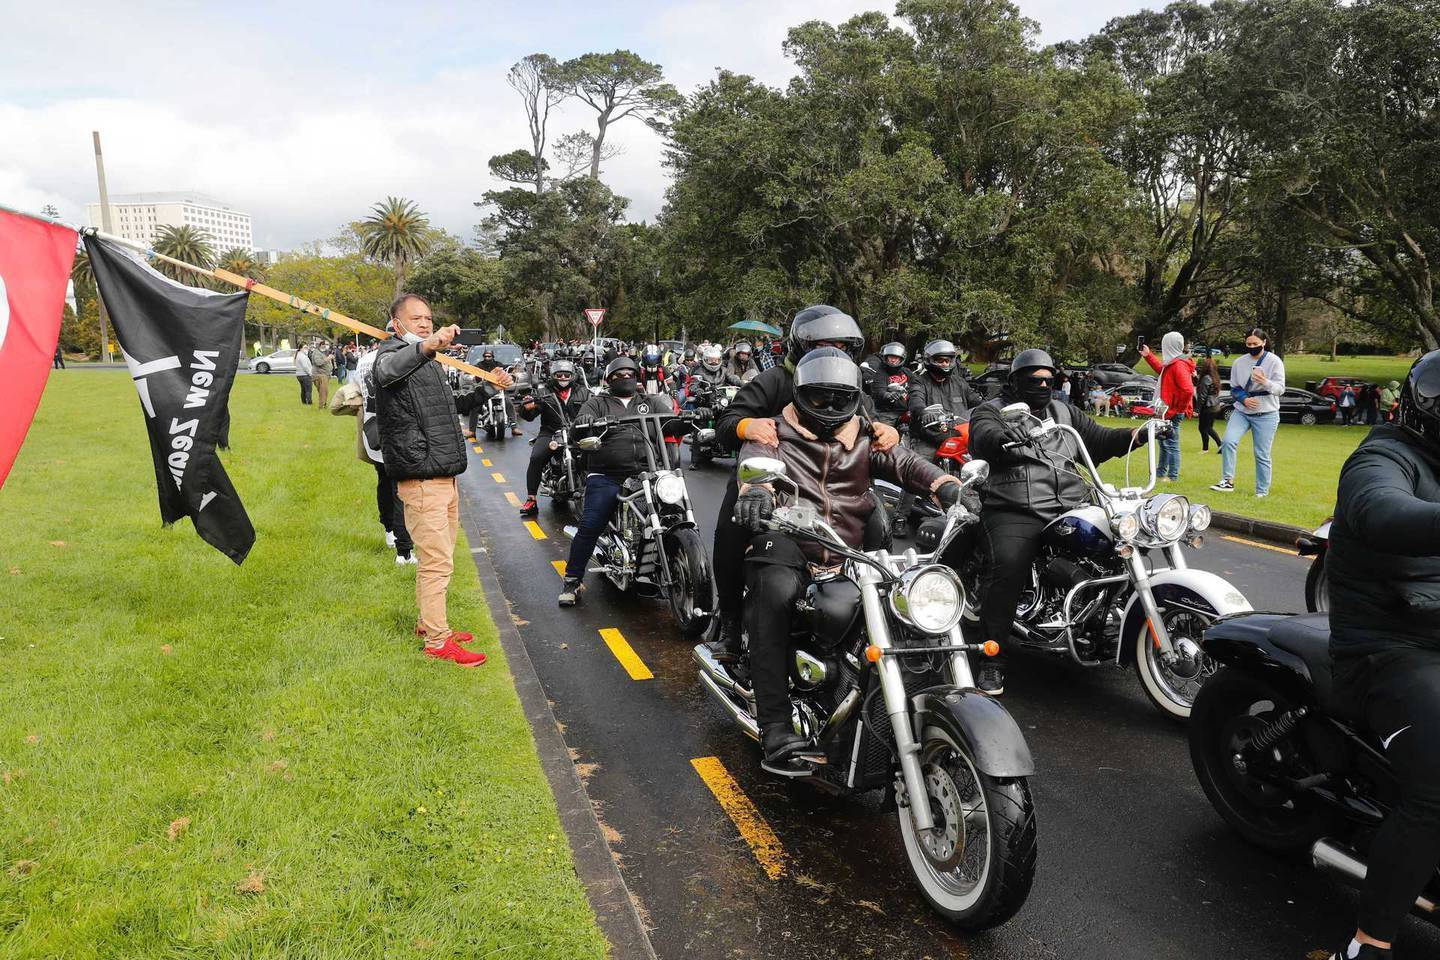 Bikers arriving for the anti-lockdown rally. Photo / Dean Purcell